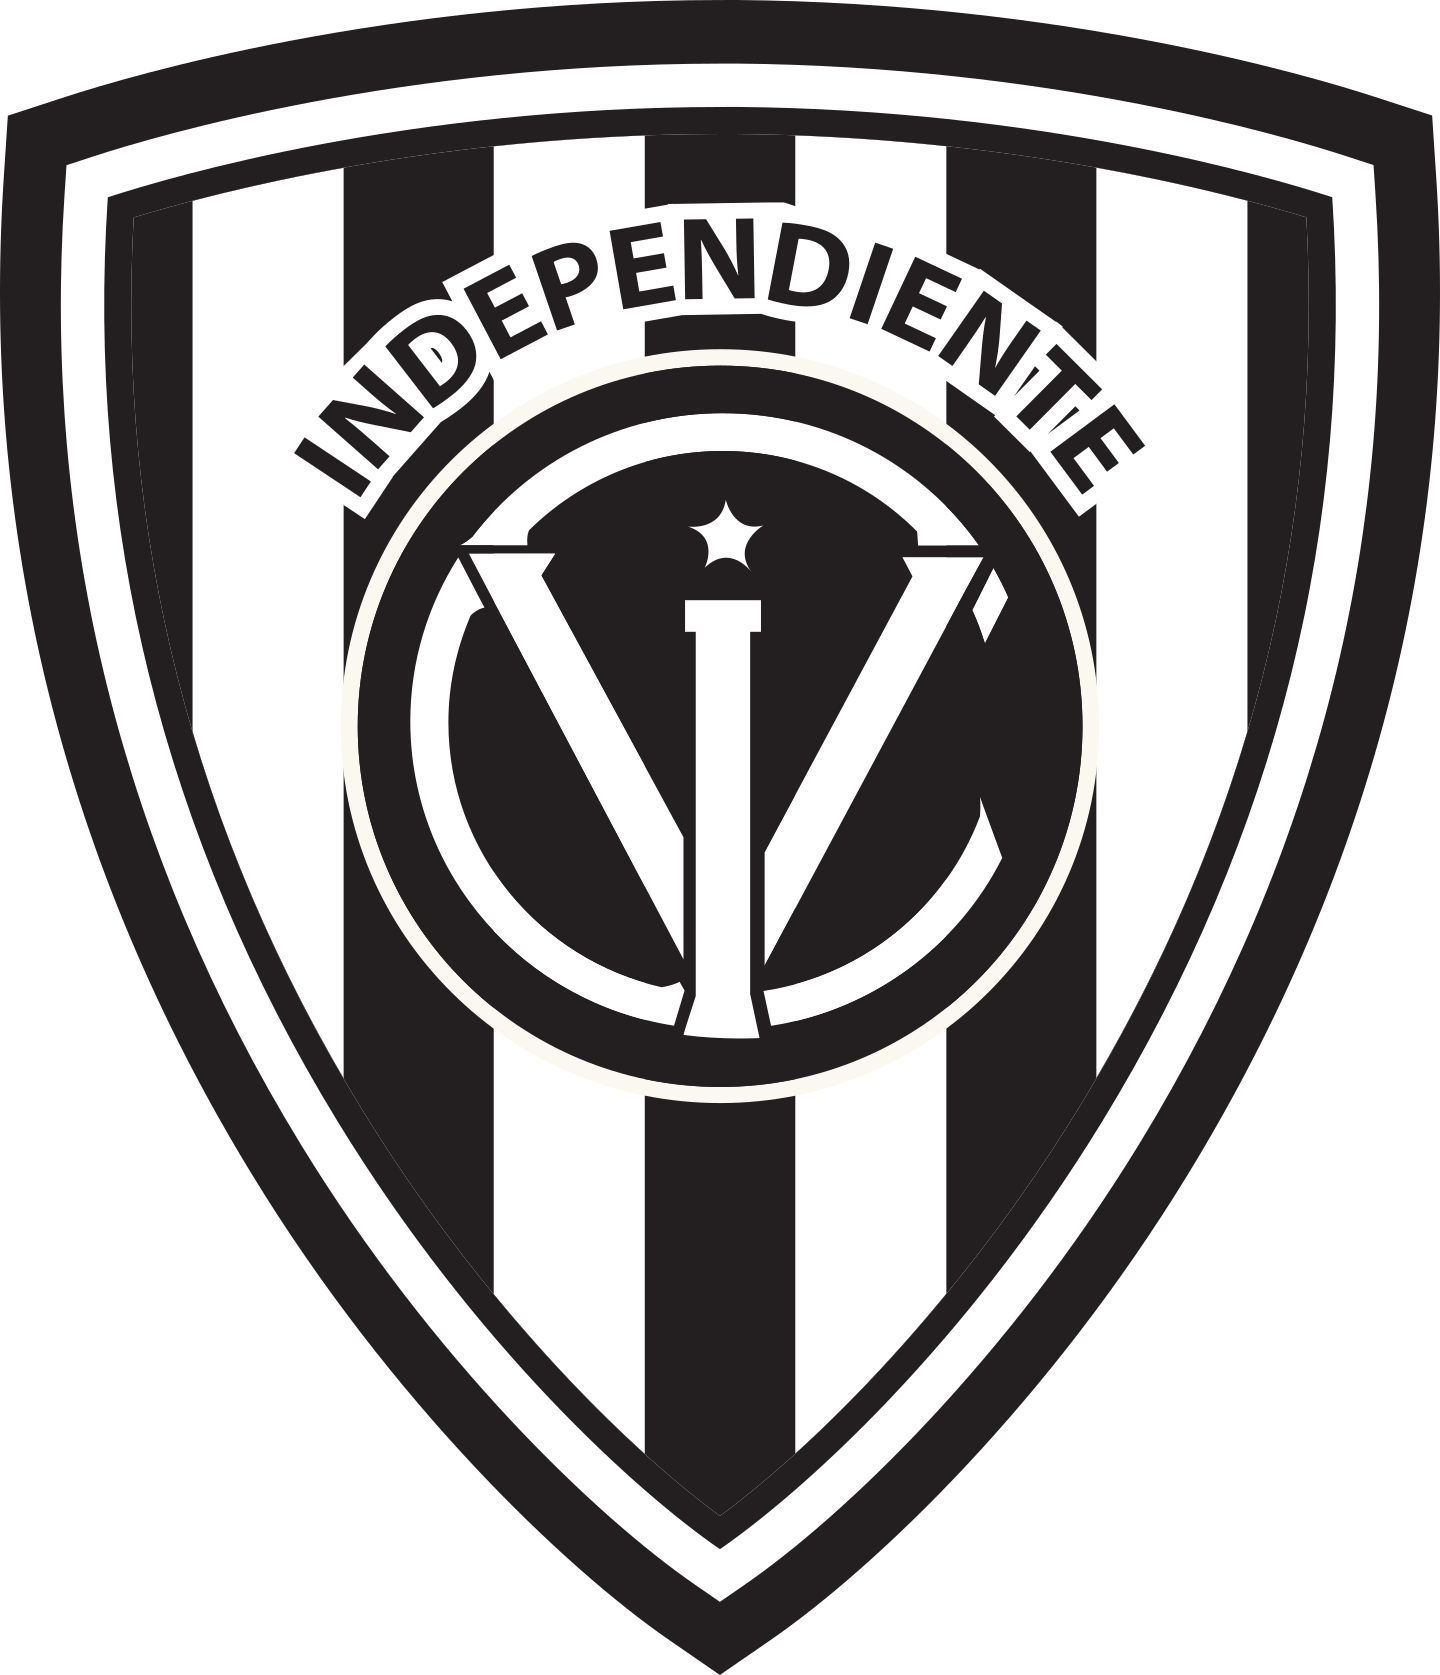 independiente del valle logo 2 - Independiente del Valle Logo – Escudo